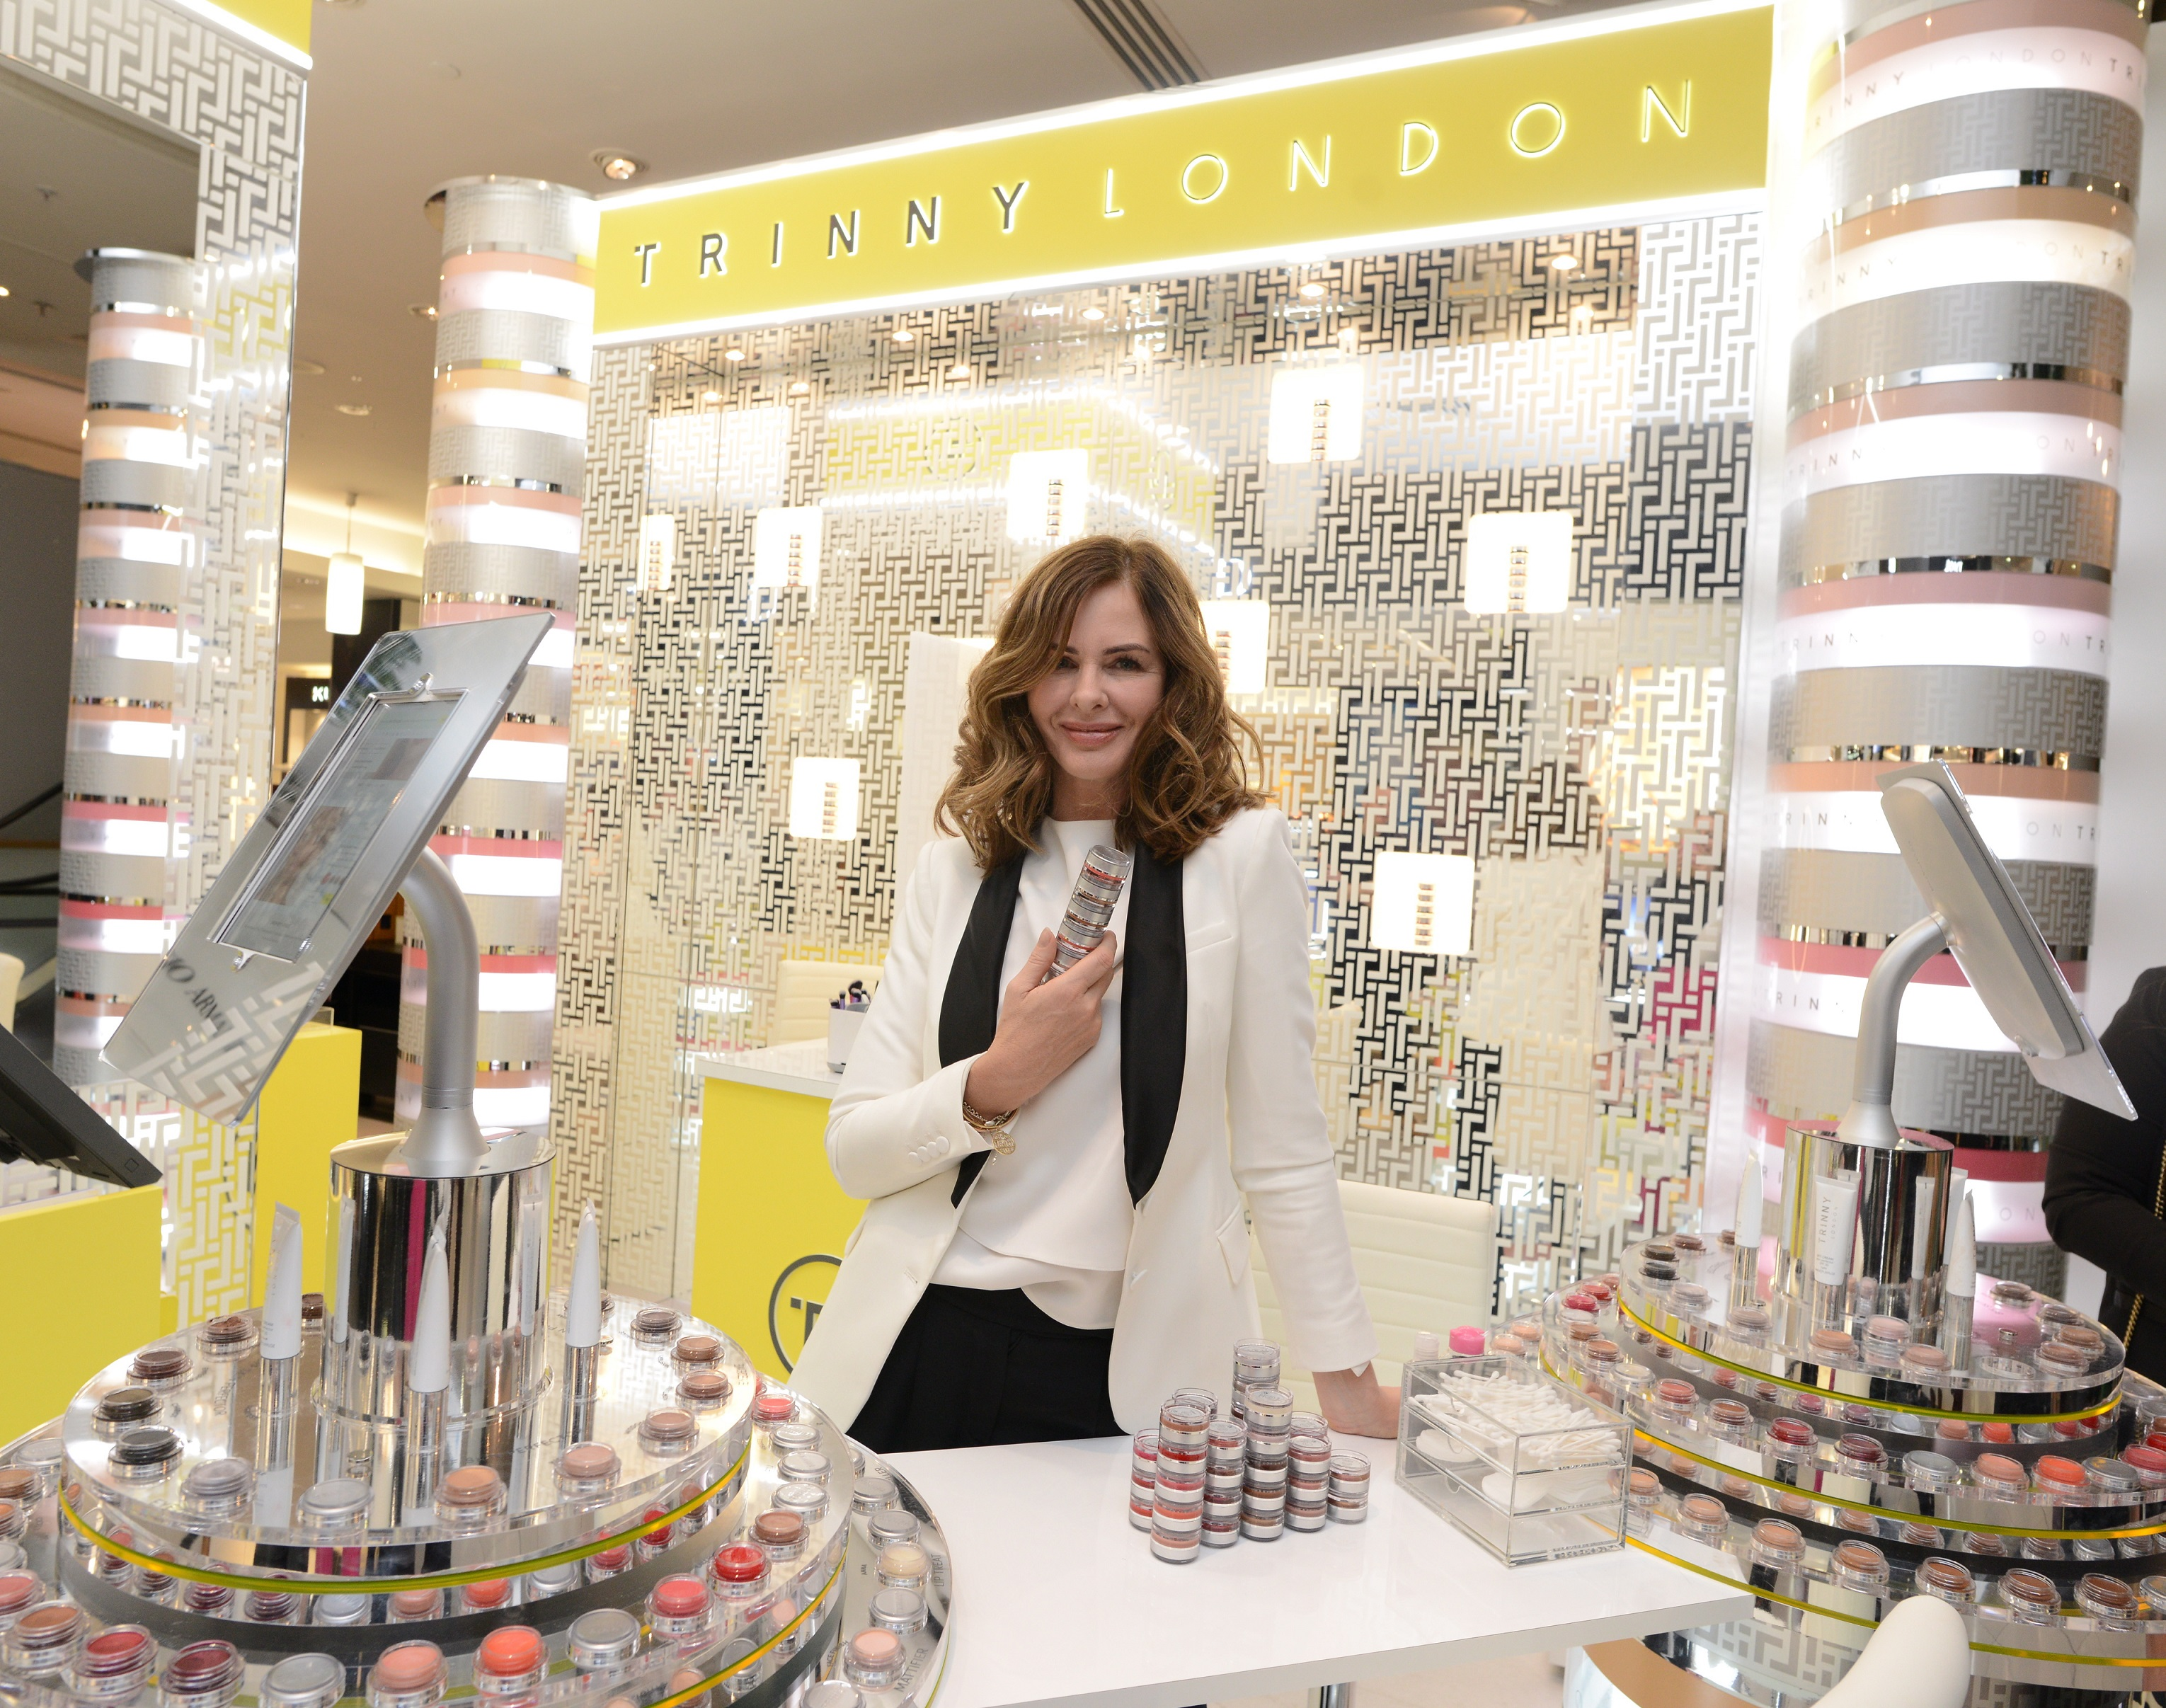 Dated: 14/11/2018 Style guru Trinny Woodall, whose beauty brand TRINNY LONDON has announced Fenwick as its first permanent retail partner, with the Newcastle store holding an exclusive launch event today.